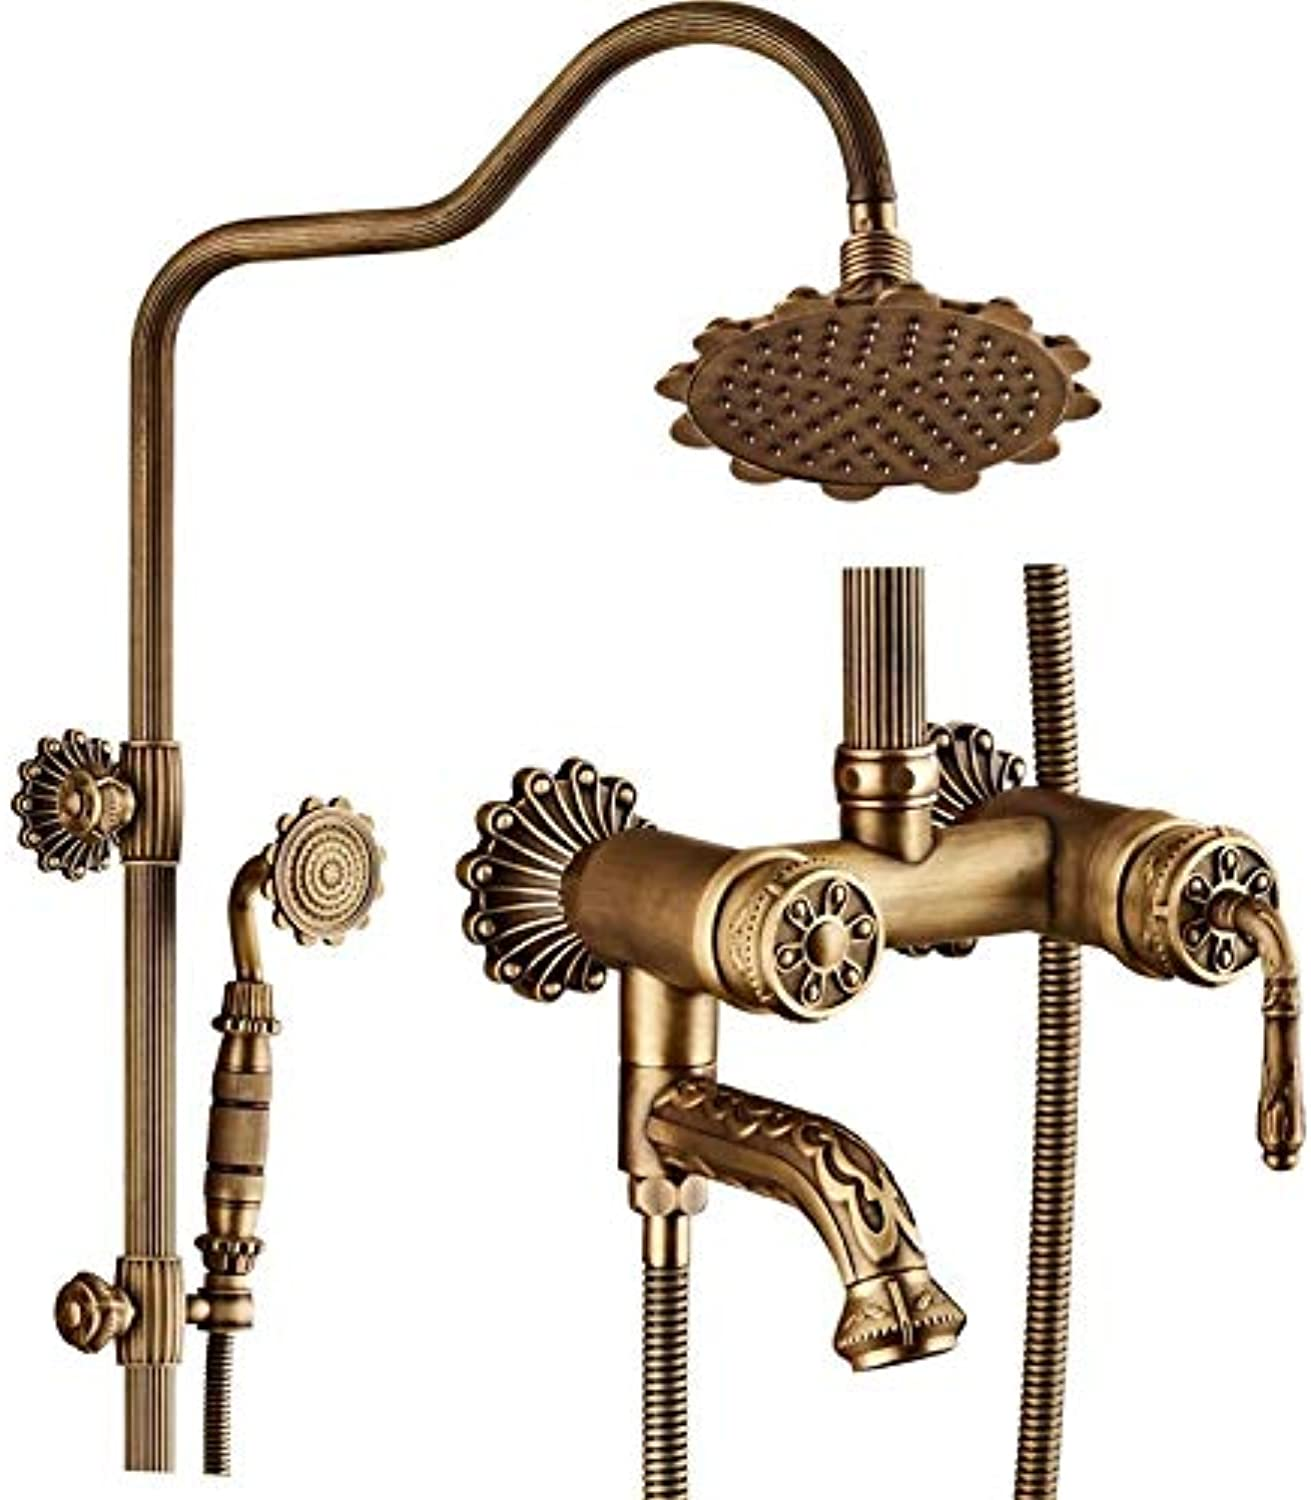 Luxurises Multifunktionsduschset, Retro Wall-Mounted Mixer Shower Set, All Copper Hand Held Hot und Cold Shower Head Scalding Protection